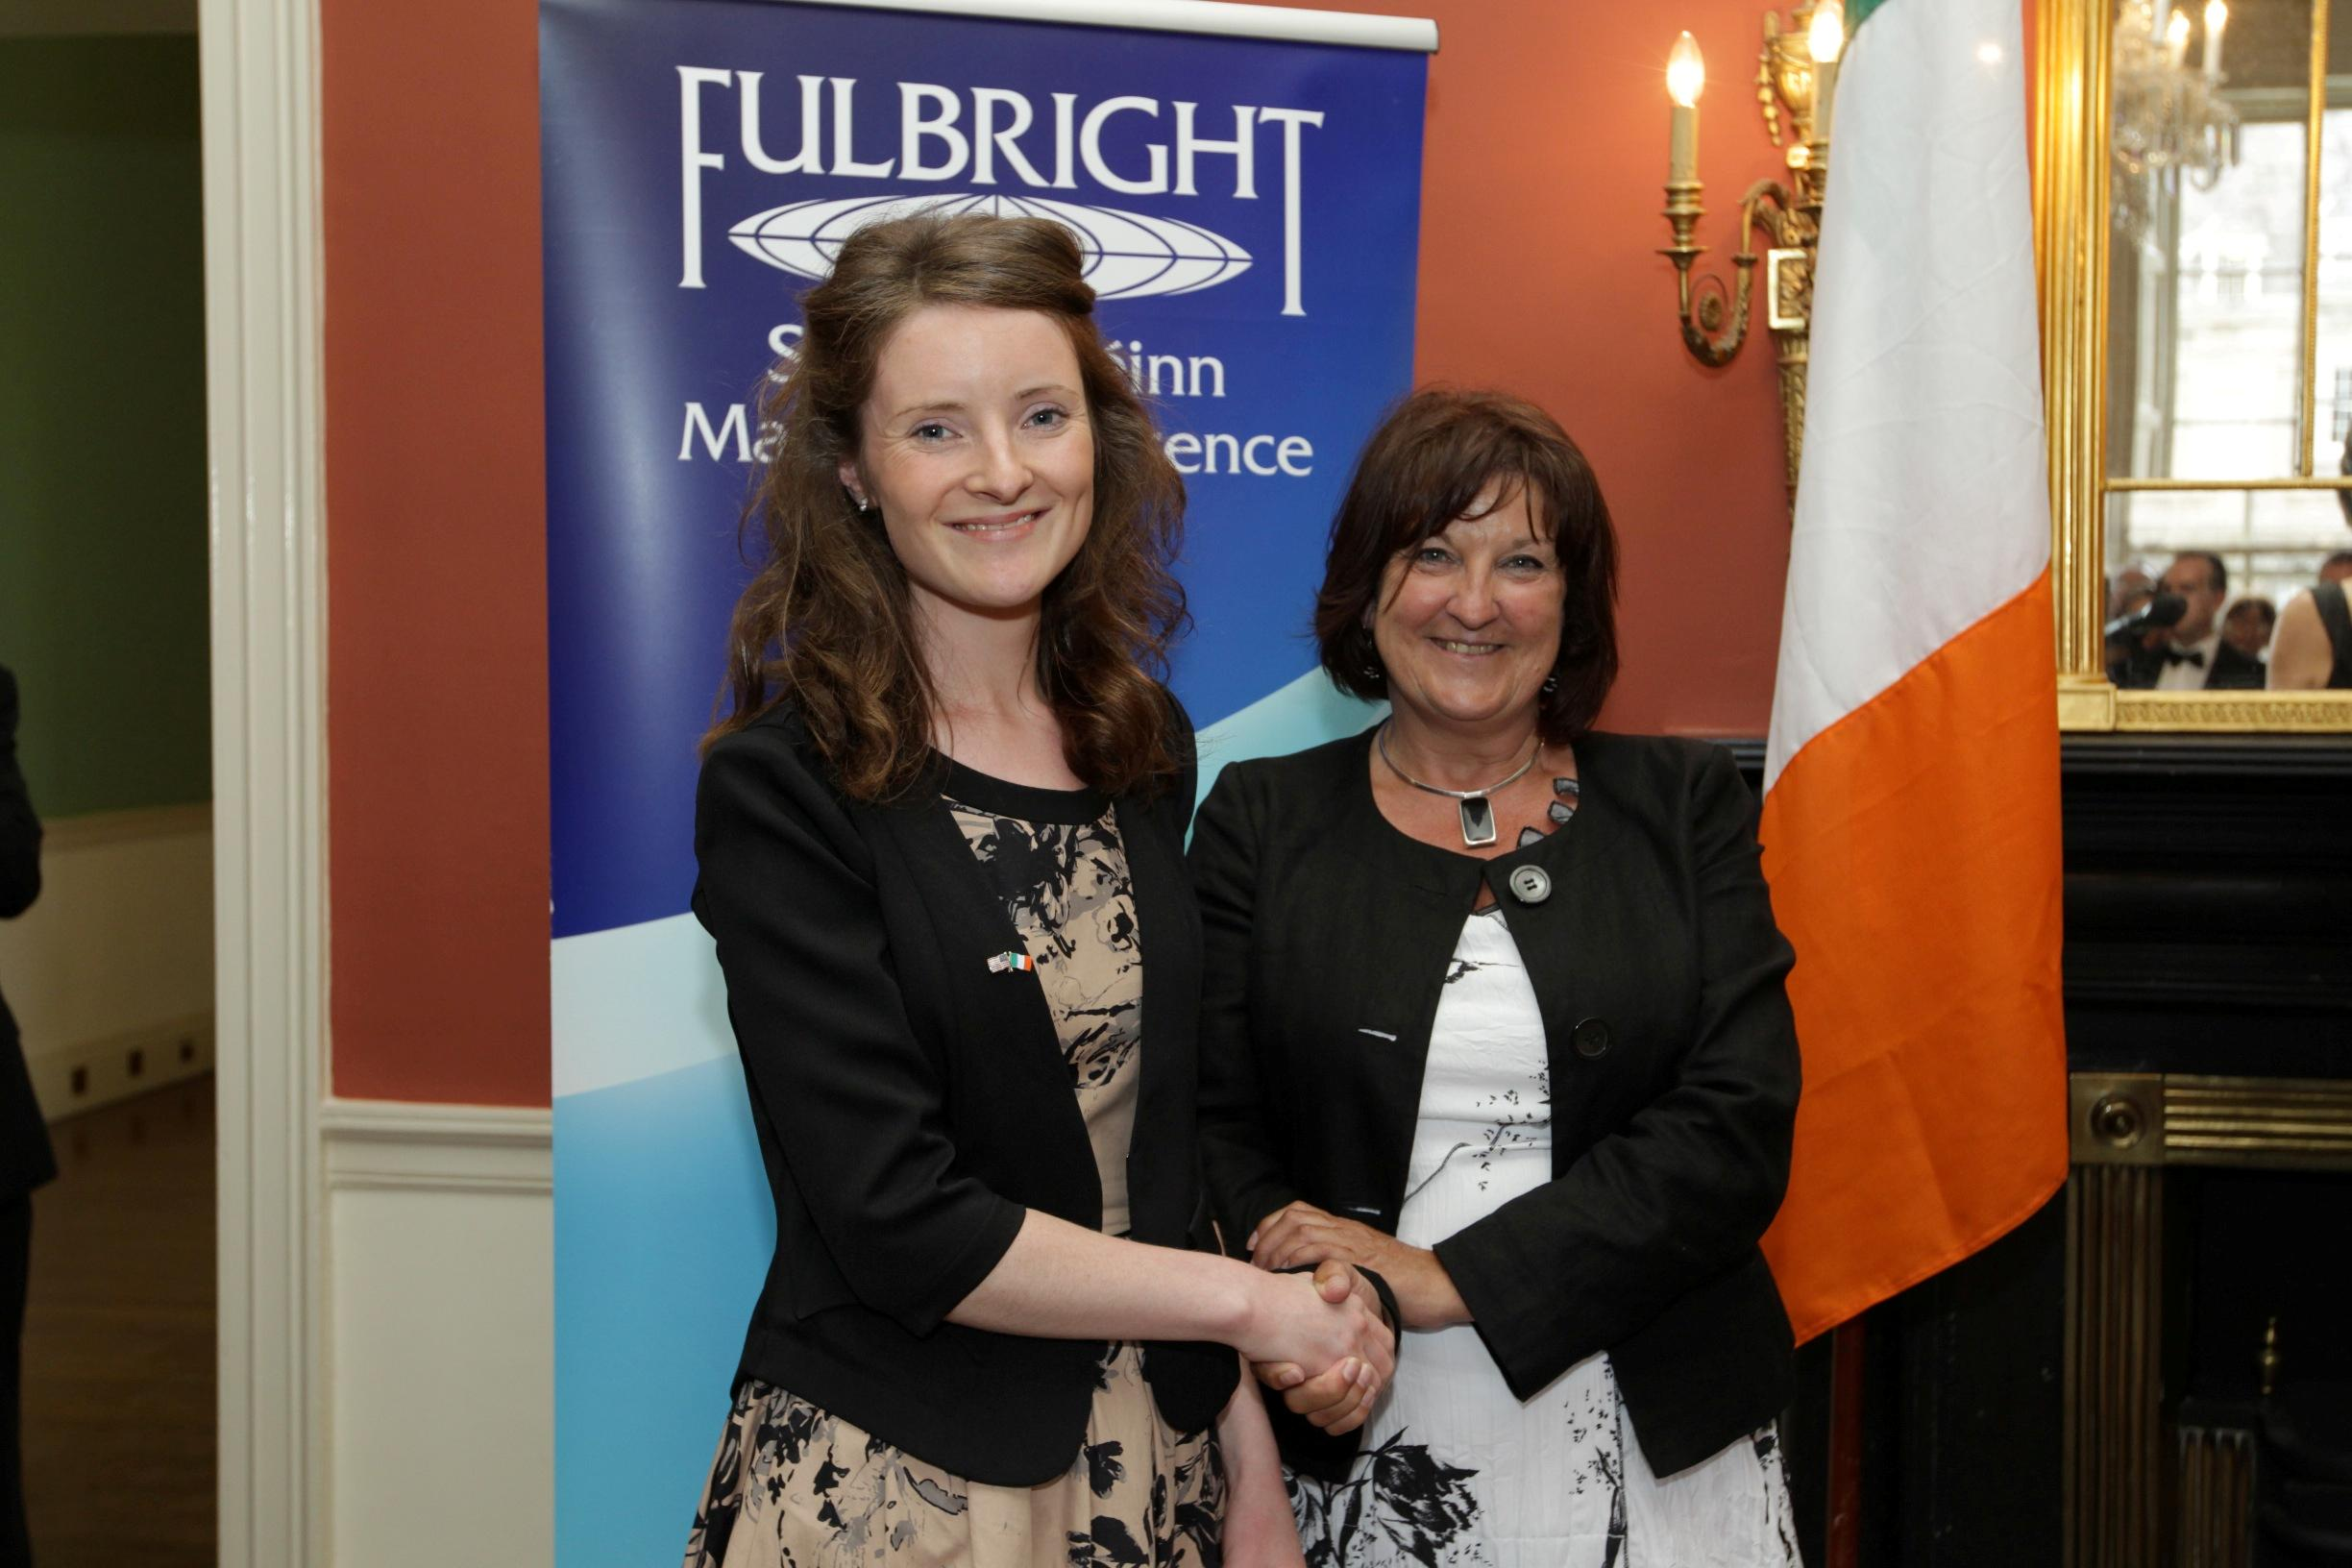 Fulbright Scholar Niamh O'Mahony returns to Cork